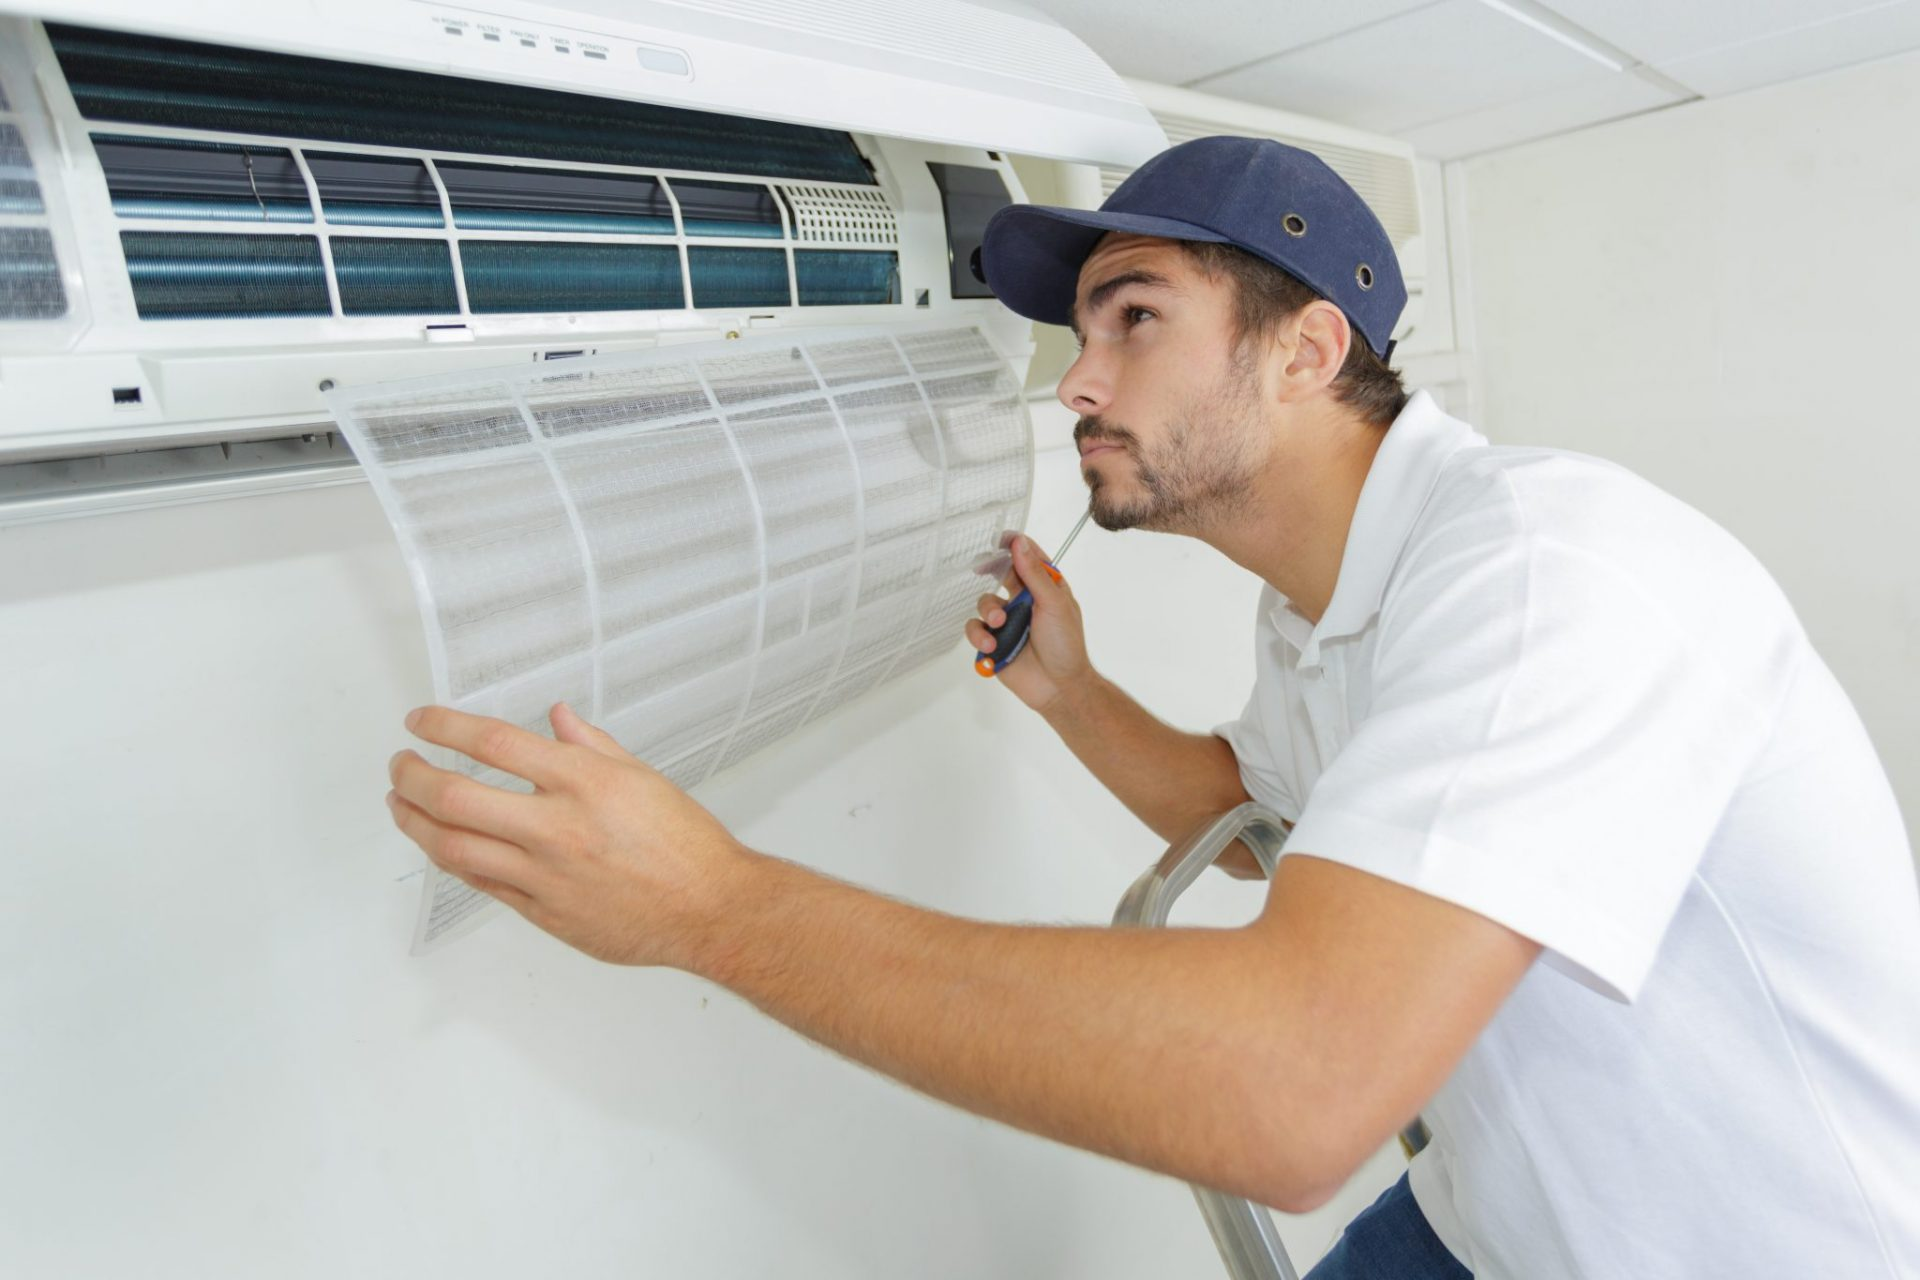 Maintenance for retail stores, offices and buildings